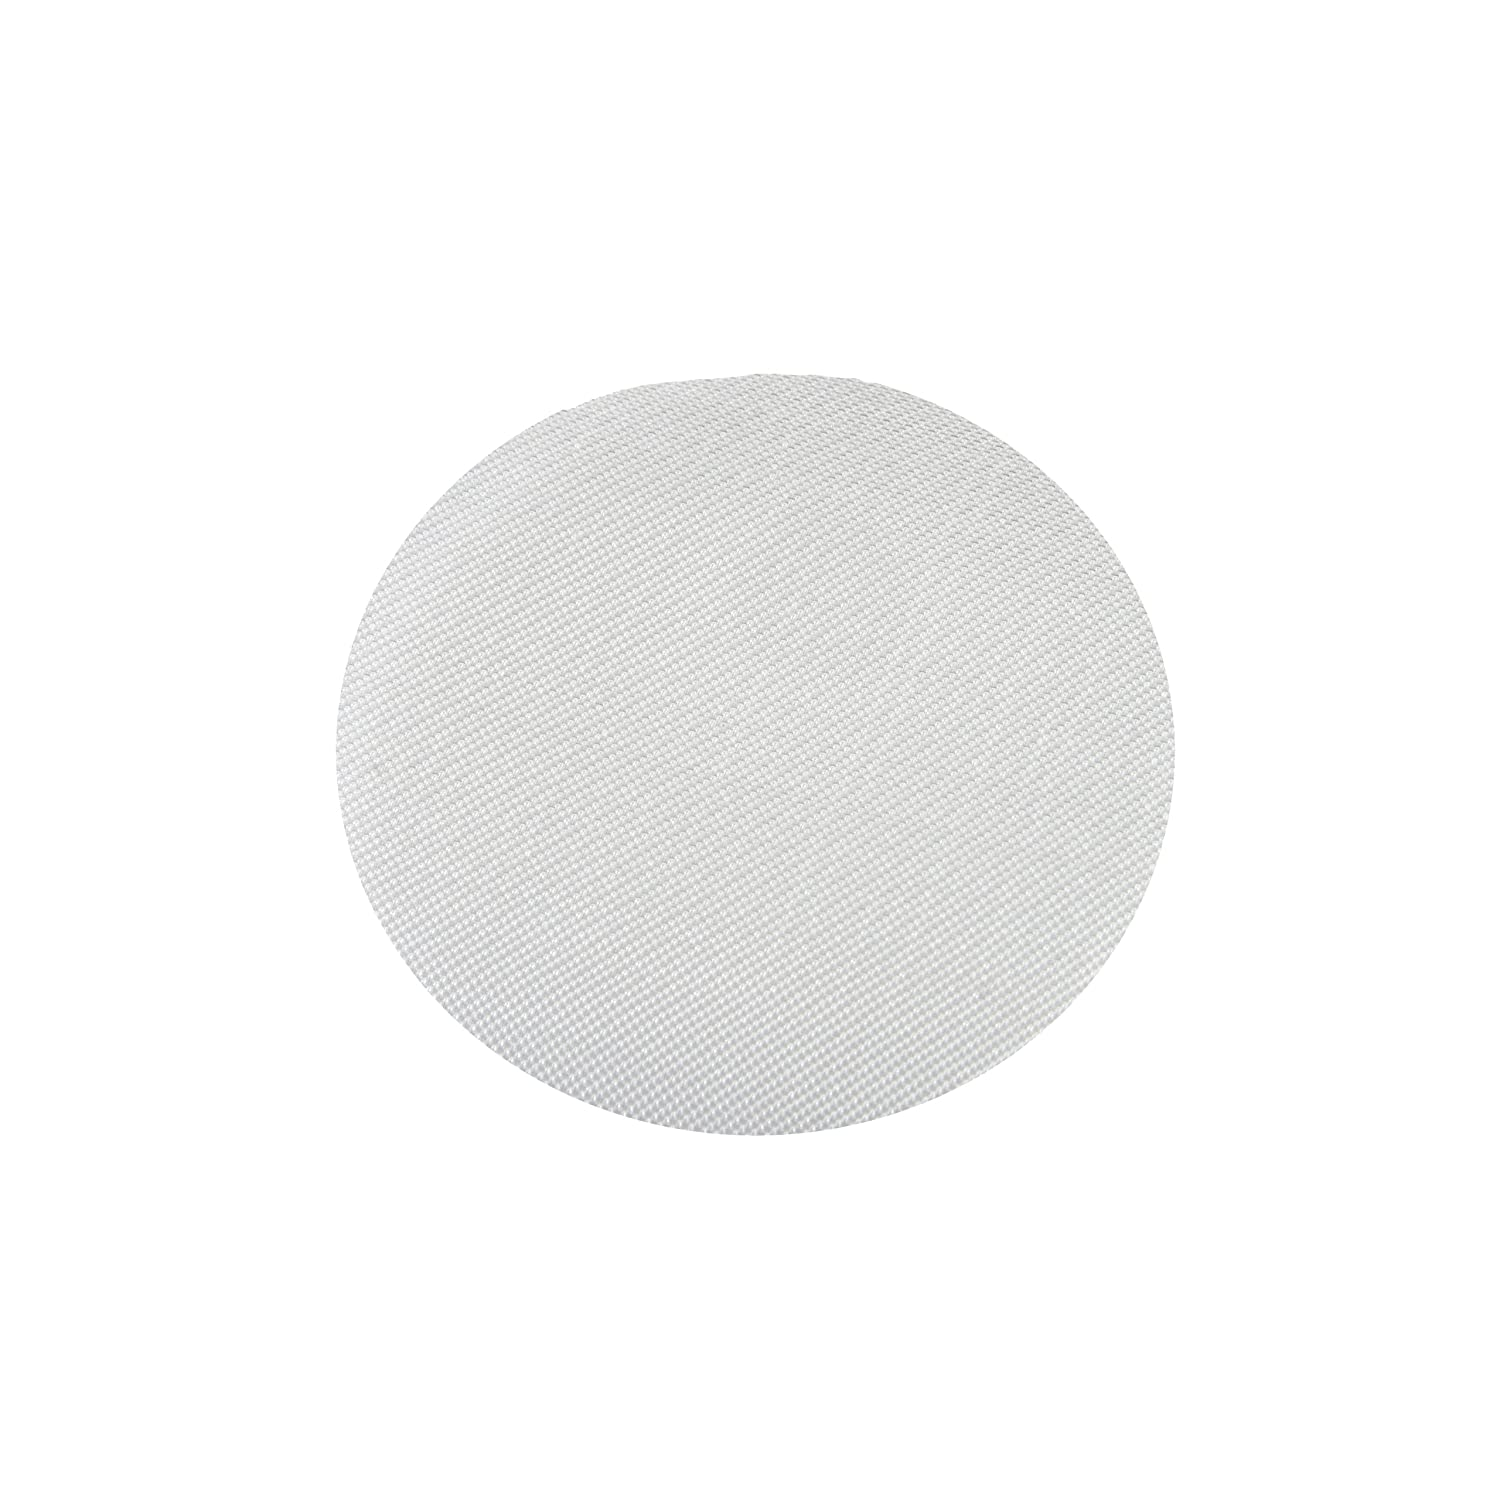 Millipore GVWP04700 White PVDF Durapore Hydrophilic Membrane Filter 6.7mL min x sq cm Water Flow Rate 47mm Diameter 0.22 Micron Pack of 100